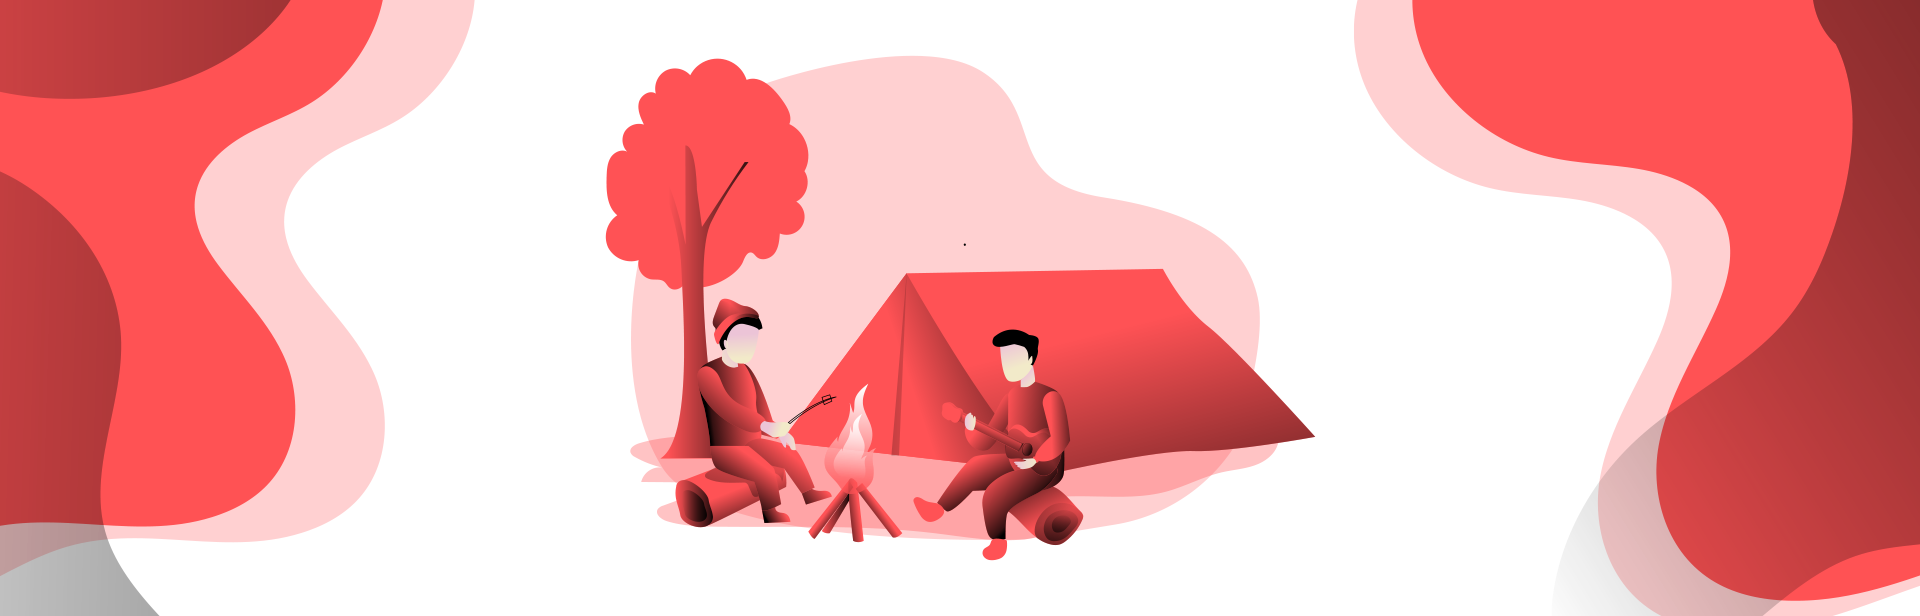 Best camping apps aim to help people find campgrounds on the go.